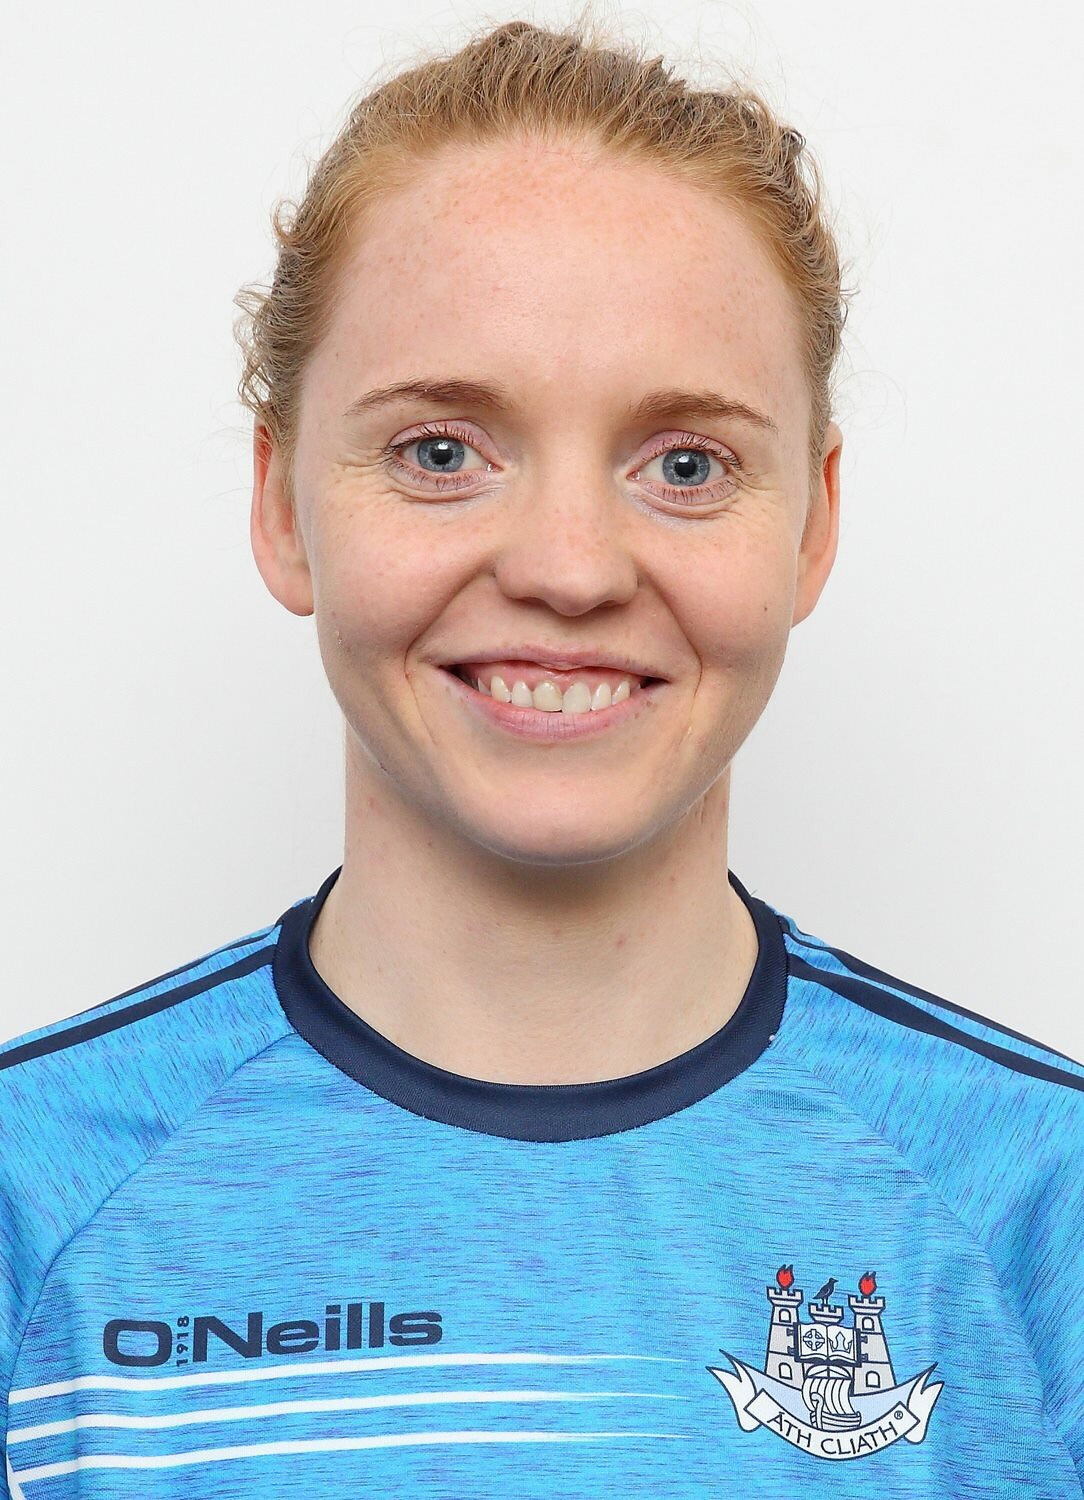 Headshot Of Dublin Goalkeeper Ciara Trant In a Blue training top with the Dublin Crest for the announcement she was named on the Lidl team of the league